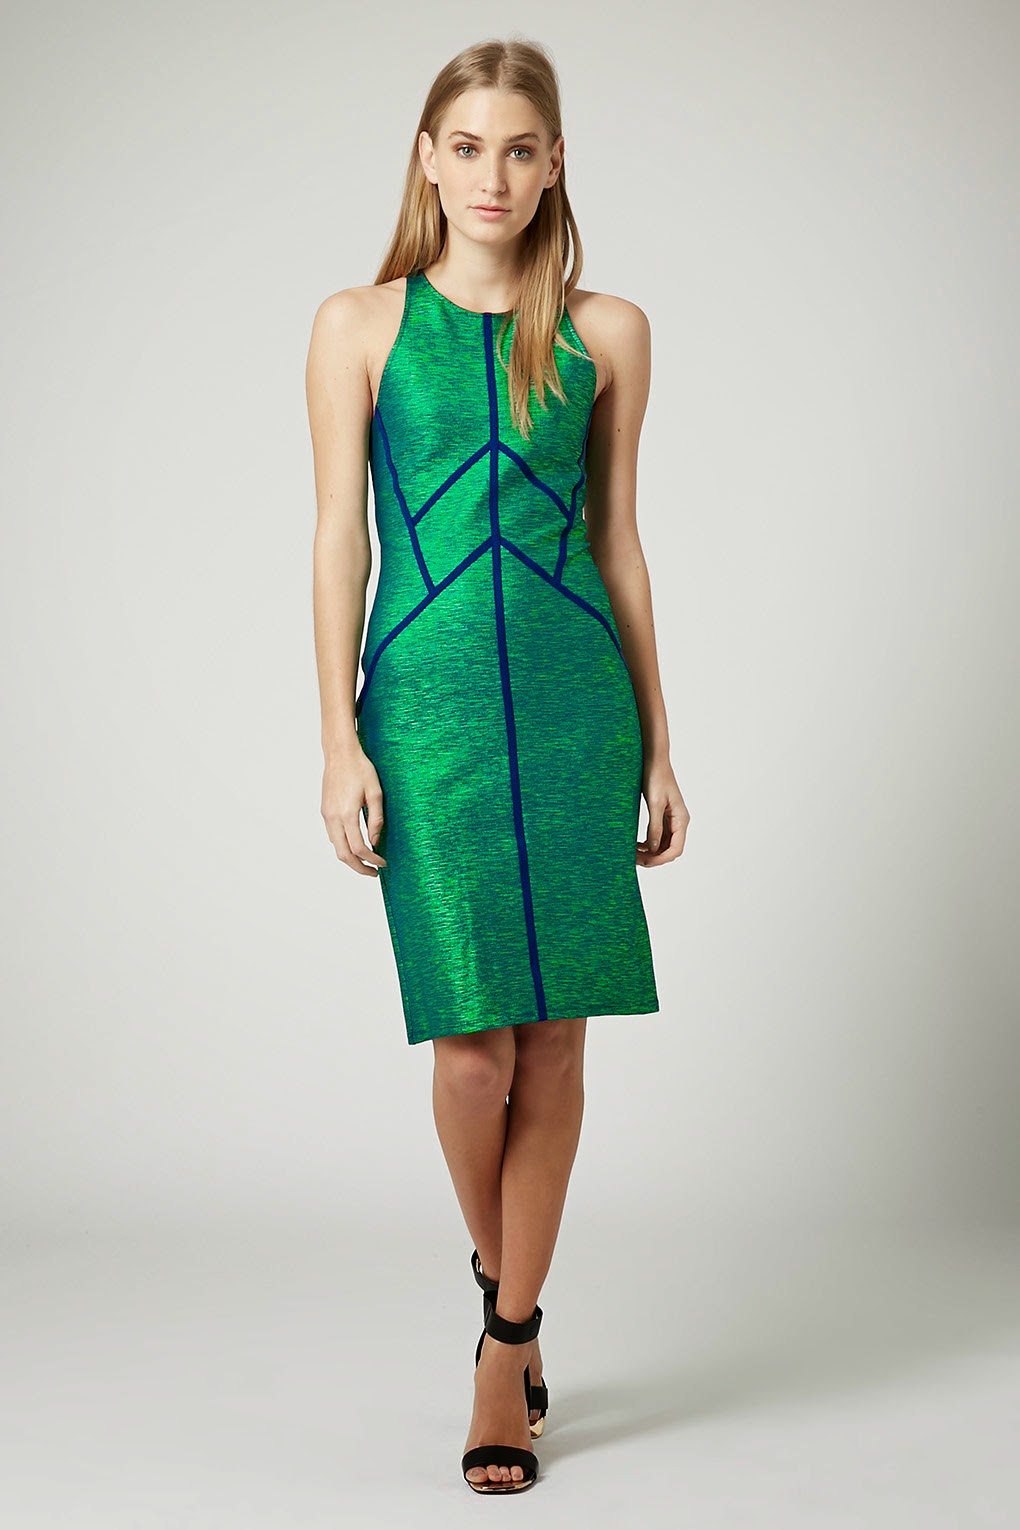 green shiny dress 2015, topshop green and blue dress,